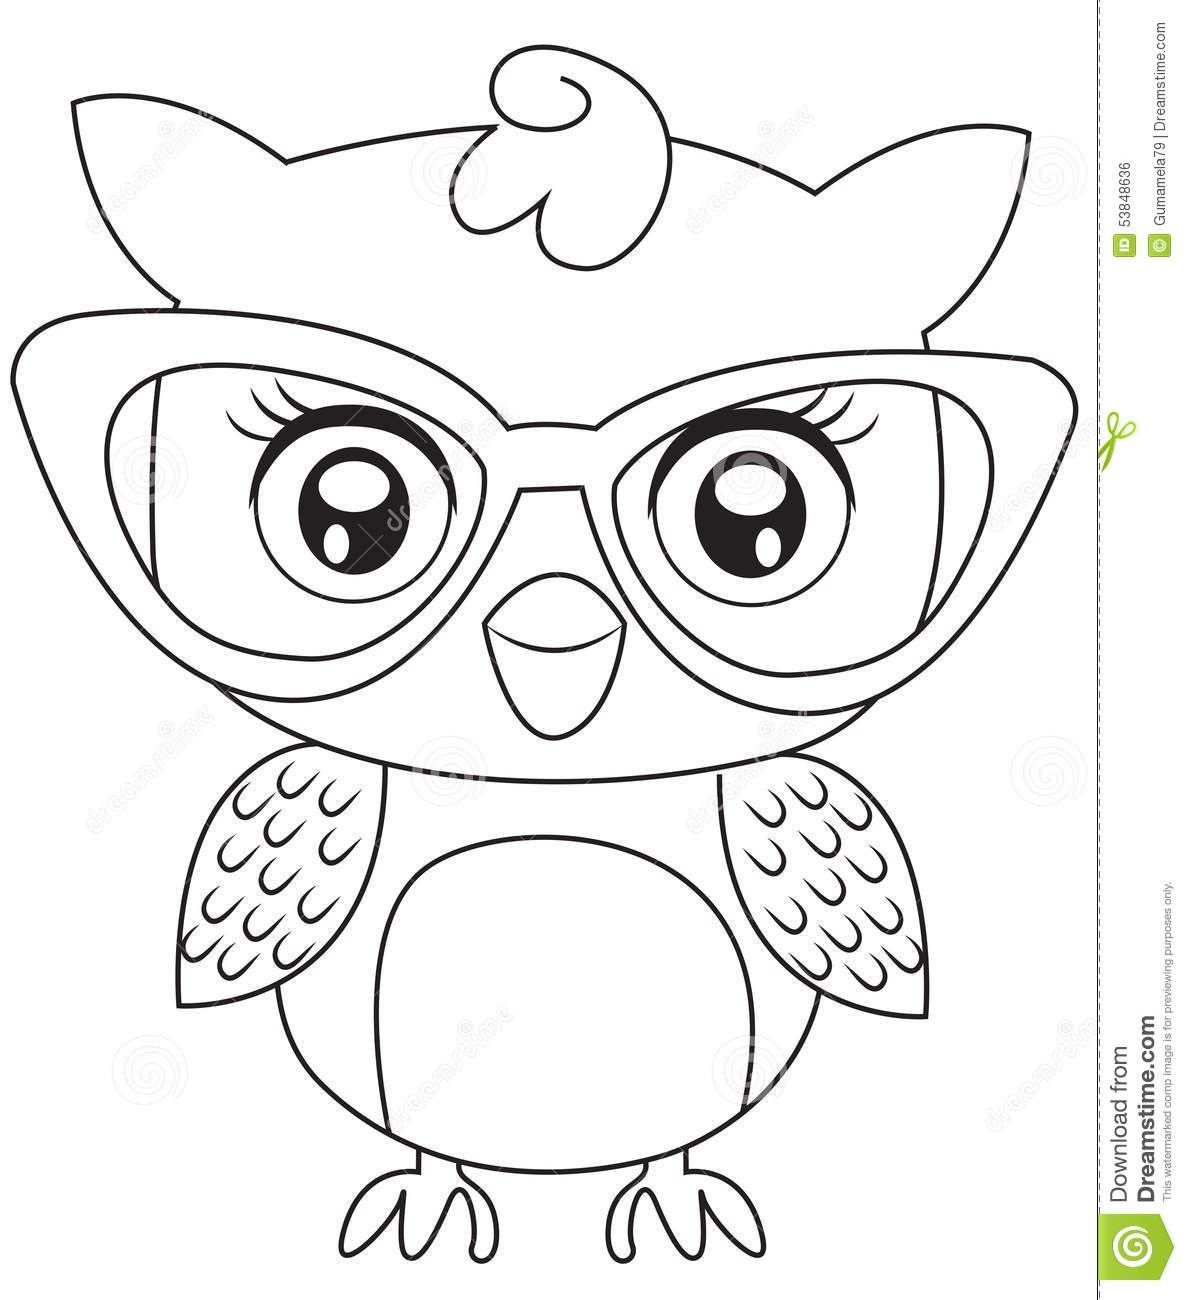 Stock Illustration Owl Eyeglasses Coloring Page Useful As Book Kids Image Owl Coloring Pages Owls Drawing Fox Coloring Page